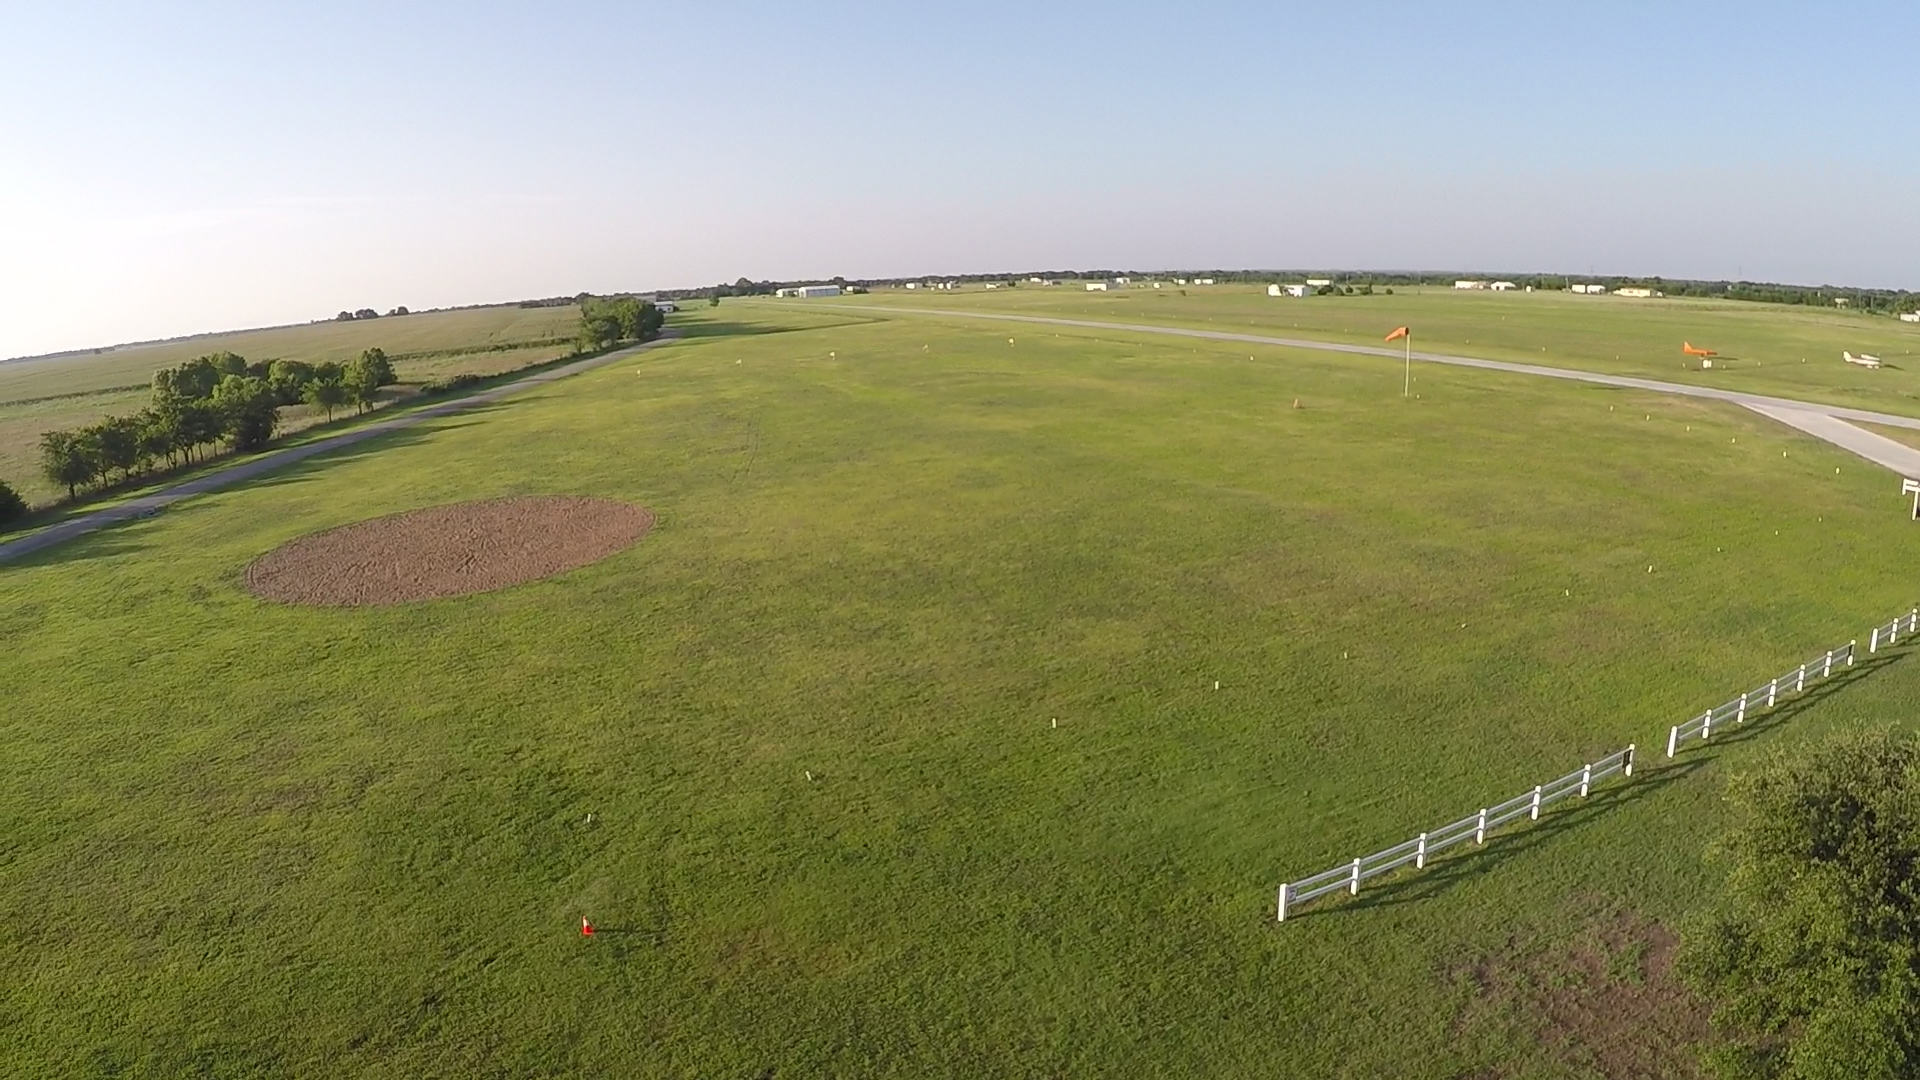 Our D license landing area is large with a cushy pea gravel pit